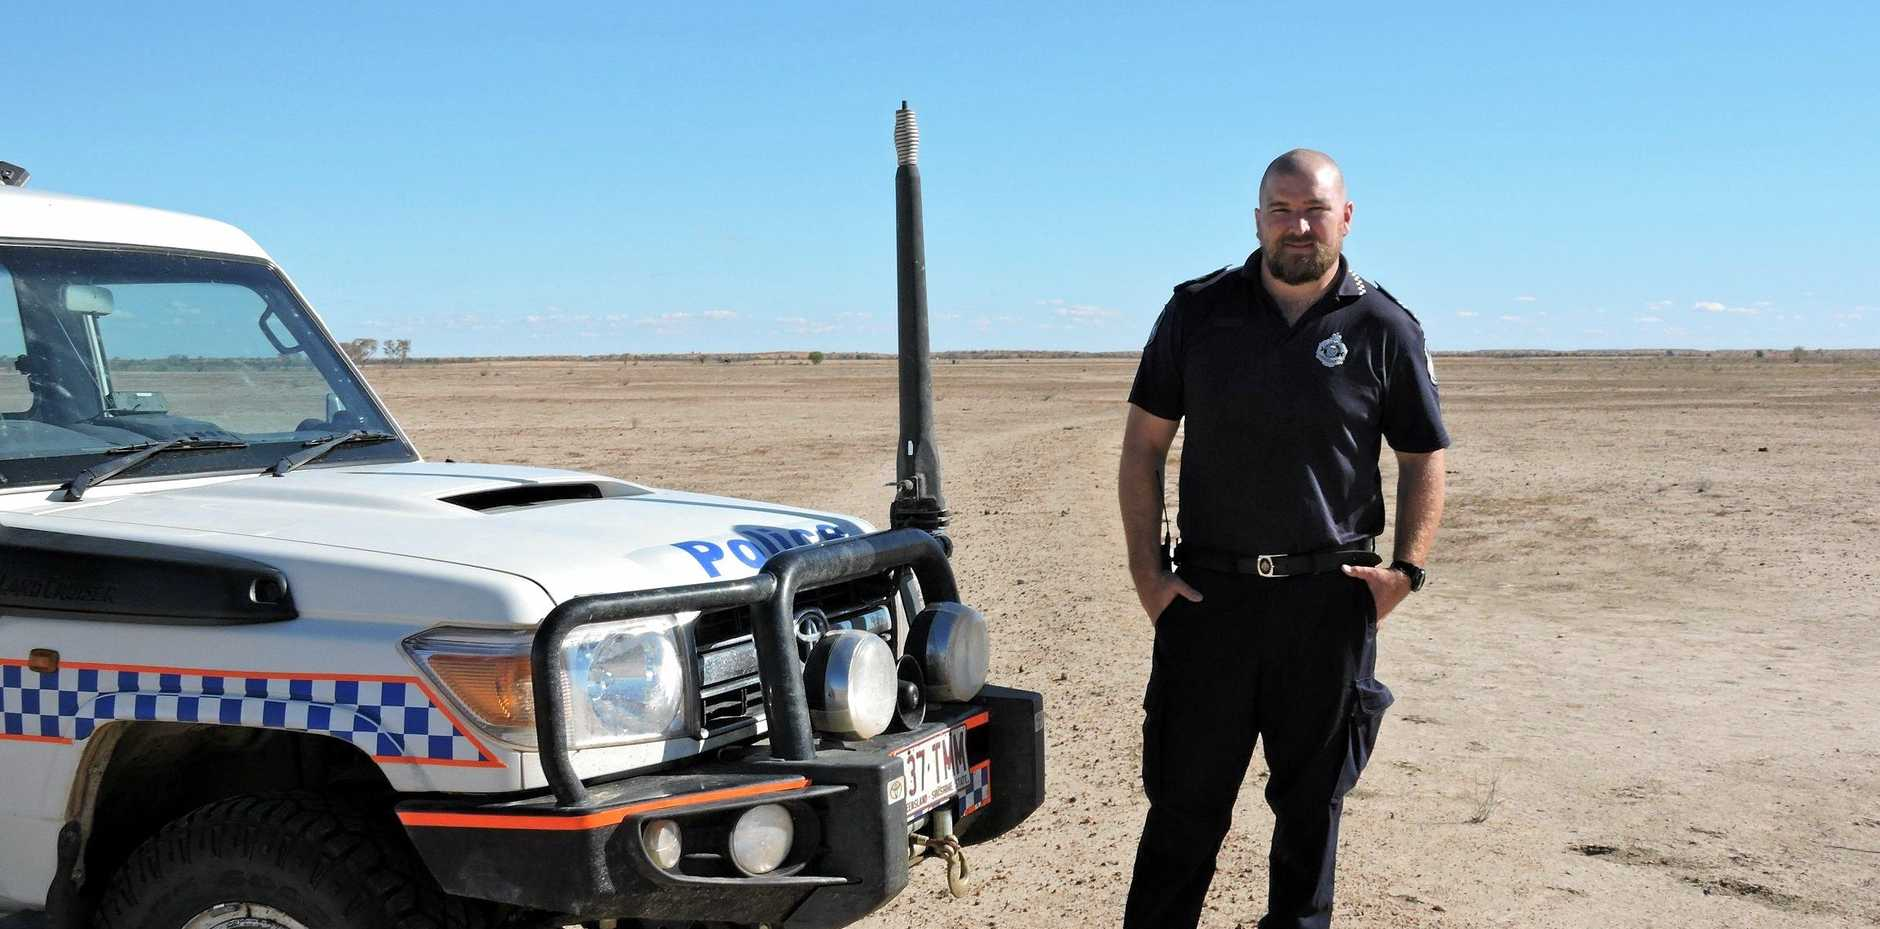 RECOGNITION:   Senior Constable Paul Jackson has won and been nominated for a QBANK Everyday Heroes Award, for those  who go above and beyond.